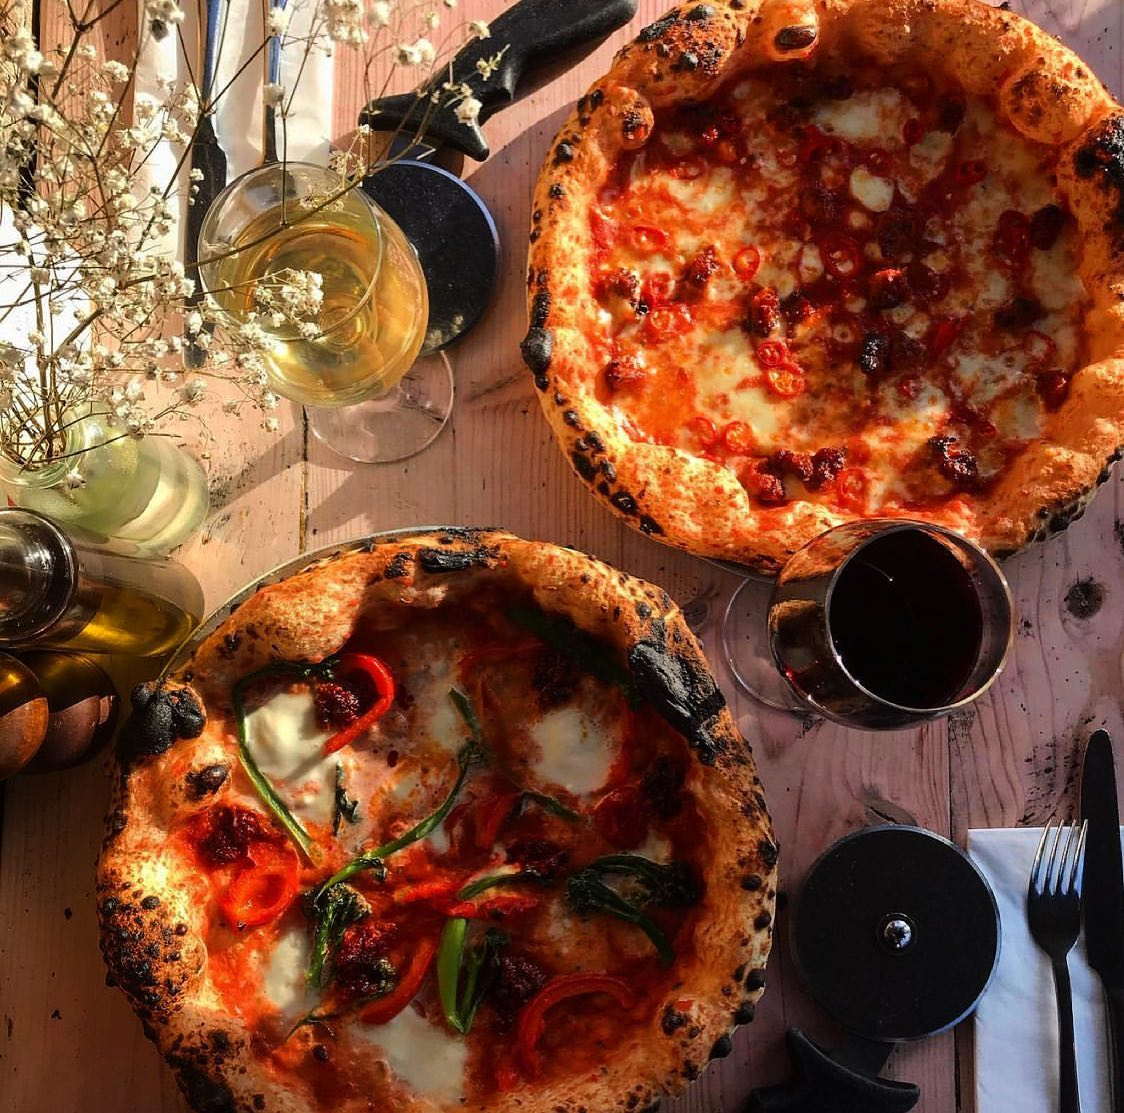 Cheese and spice and wine and pizza 😍🔥 absolutely nothing more you could want to start the week off!! 🤤🍕 and 2 for £14 even better! Come dine in with us tonight beautiful people 😘 . . . . #hackneylife #hackney #homerton #londoneats #londonfoodie #woodfiredoven #neapolitanpizza #pizzalover #cheeseydreams #nduja #londonpizza #italianrestaurant #italian #cheapeats #yummy #yum #eastlondon #eastlondoneats #foodie 🌶